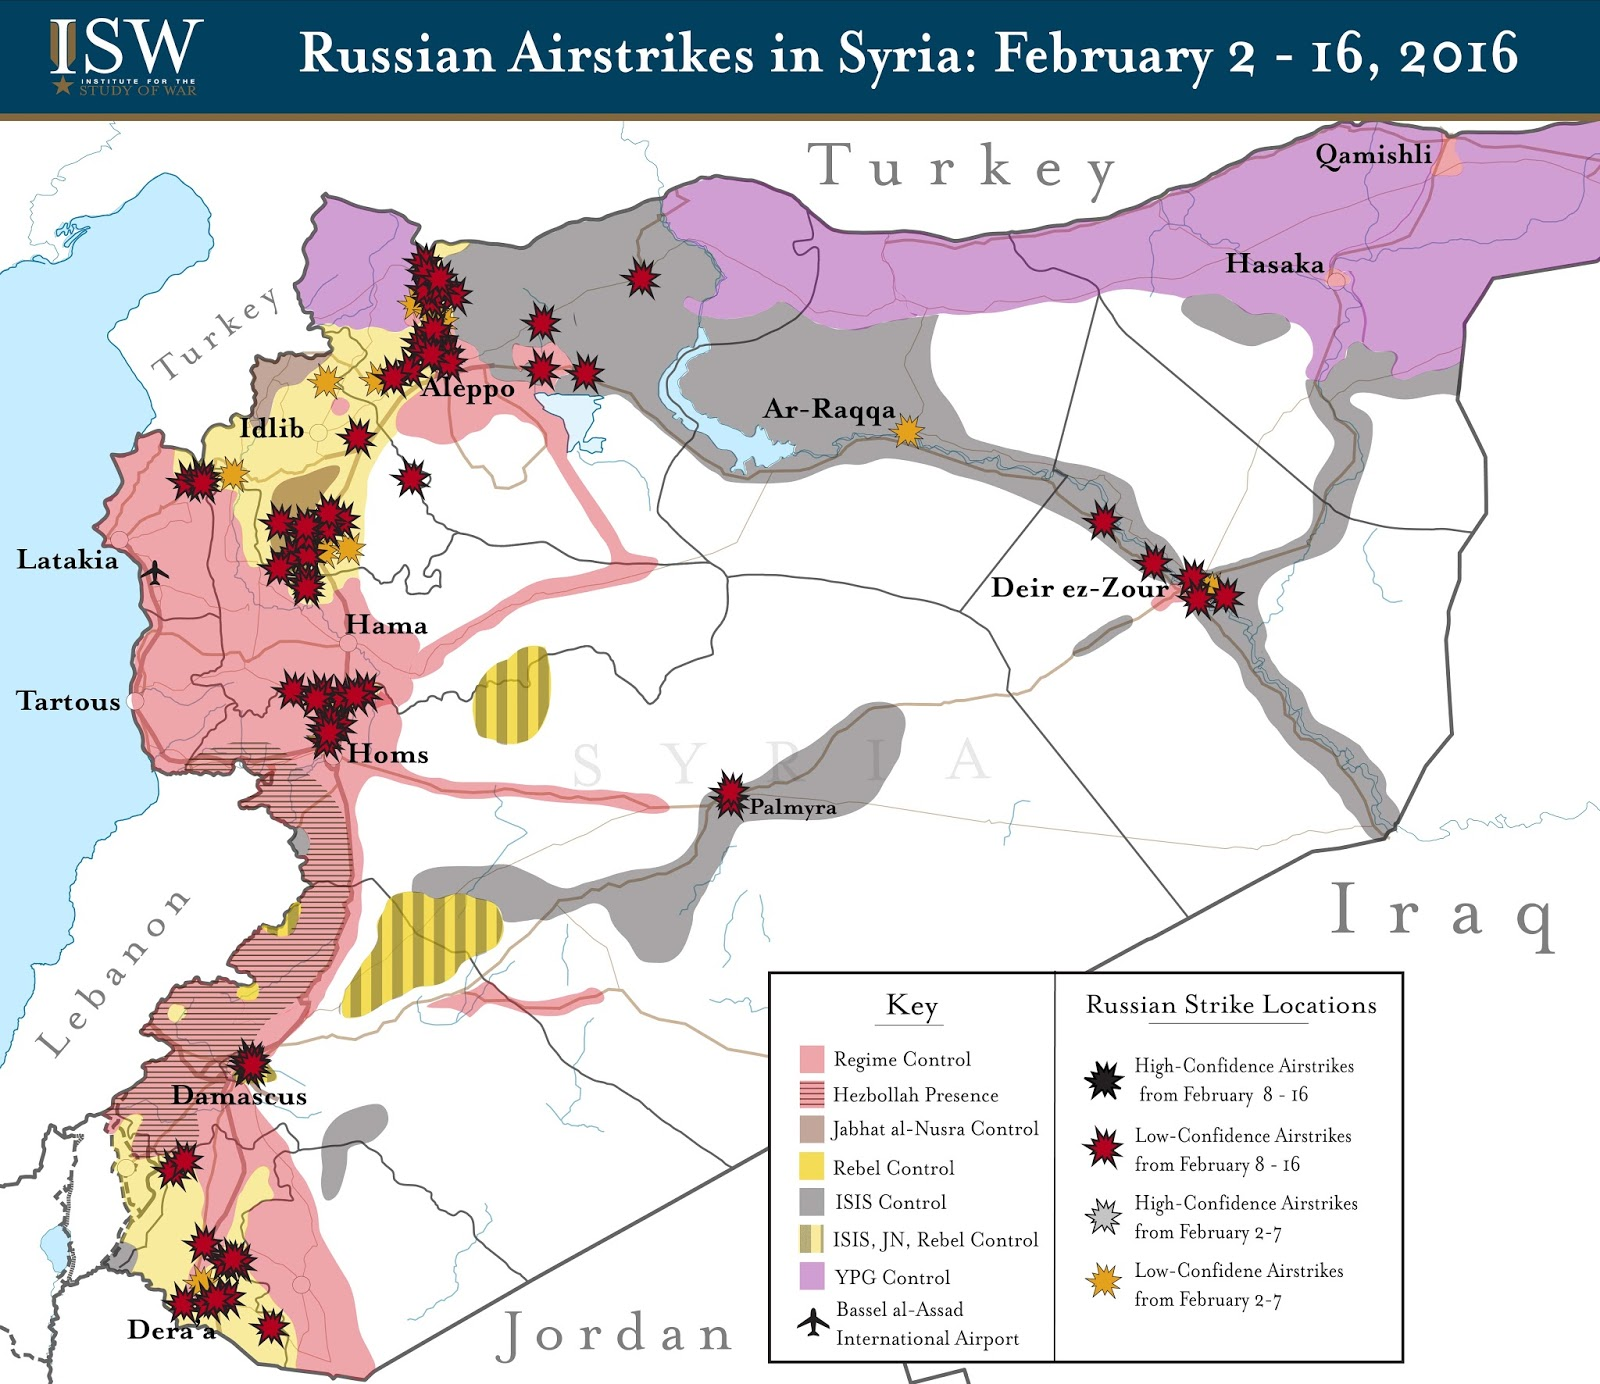 Russian airstrikes in Syria (2 - 16 February 2016)